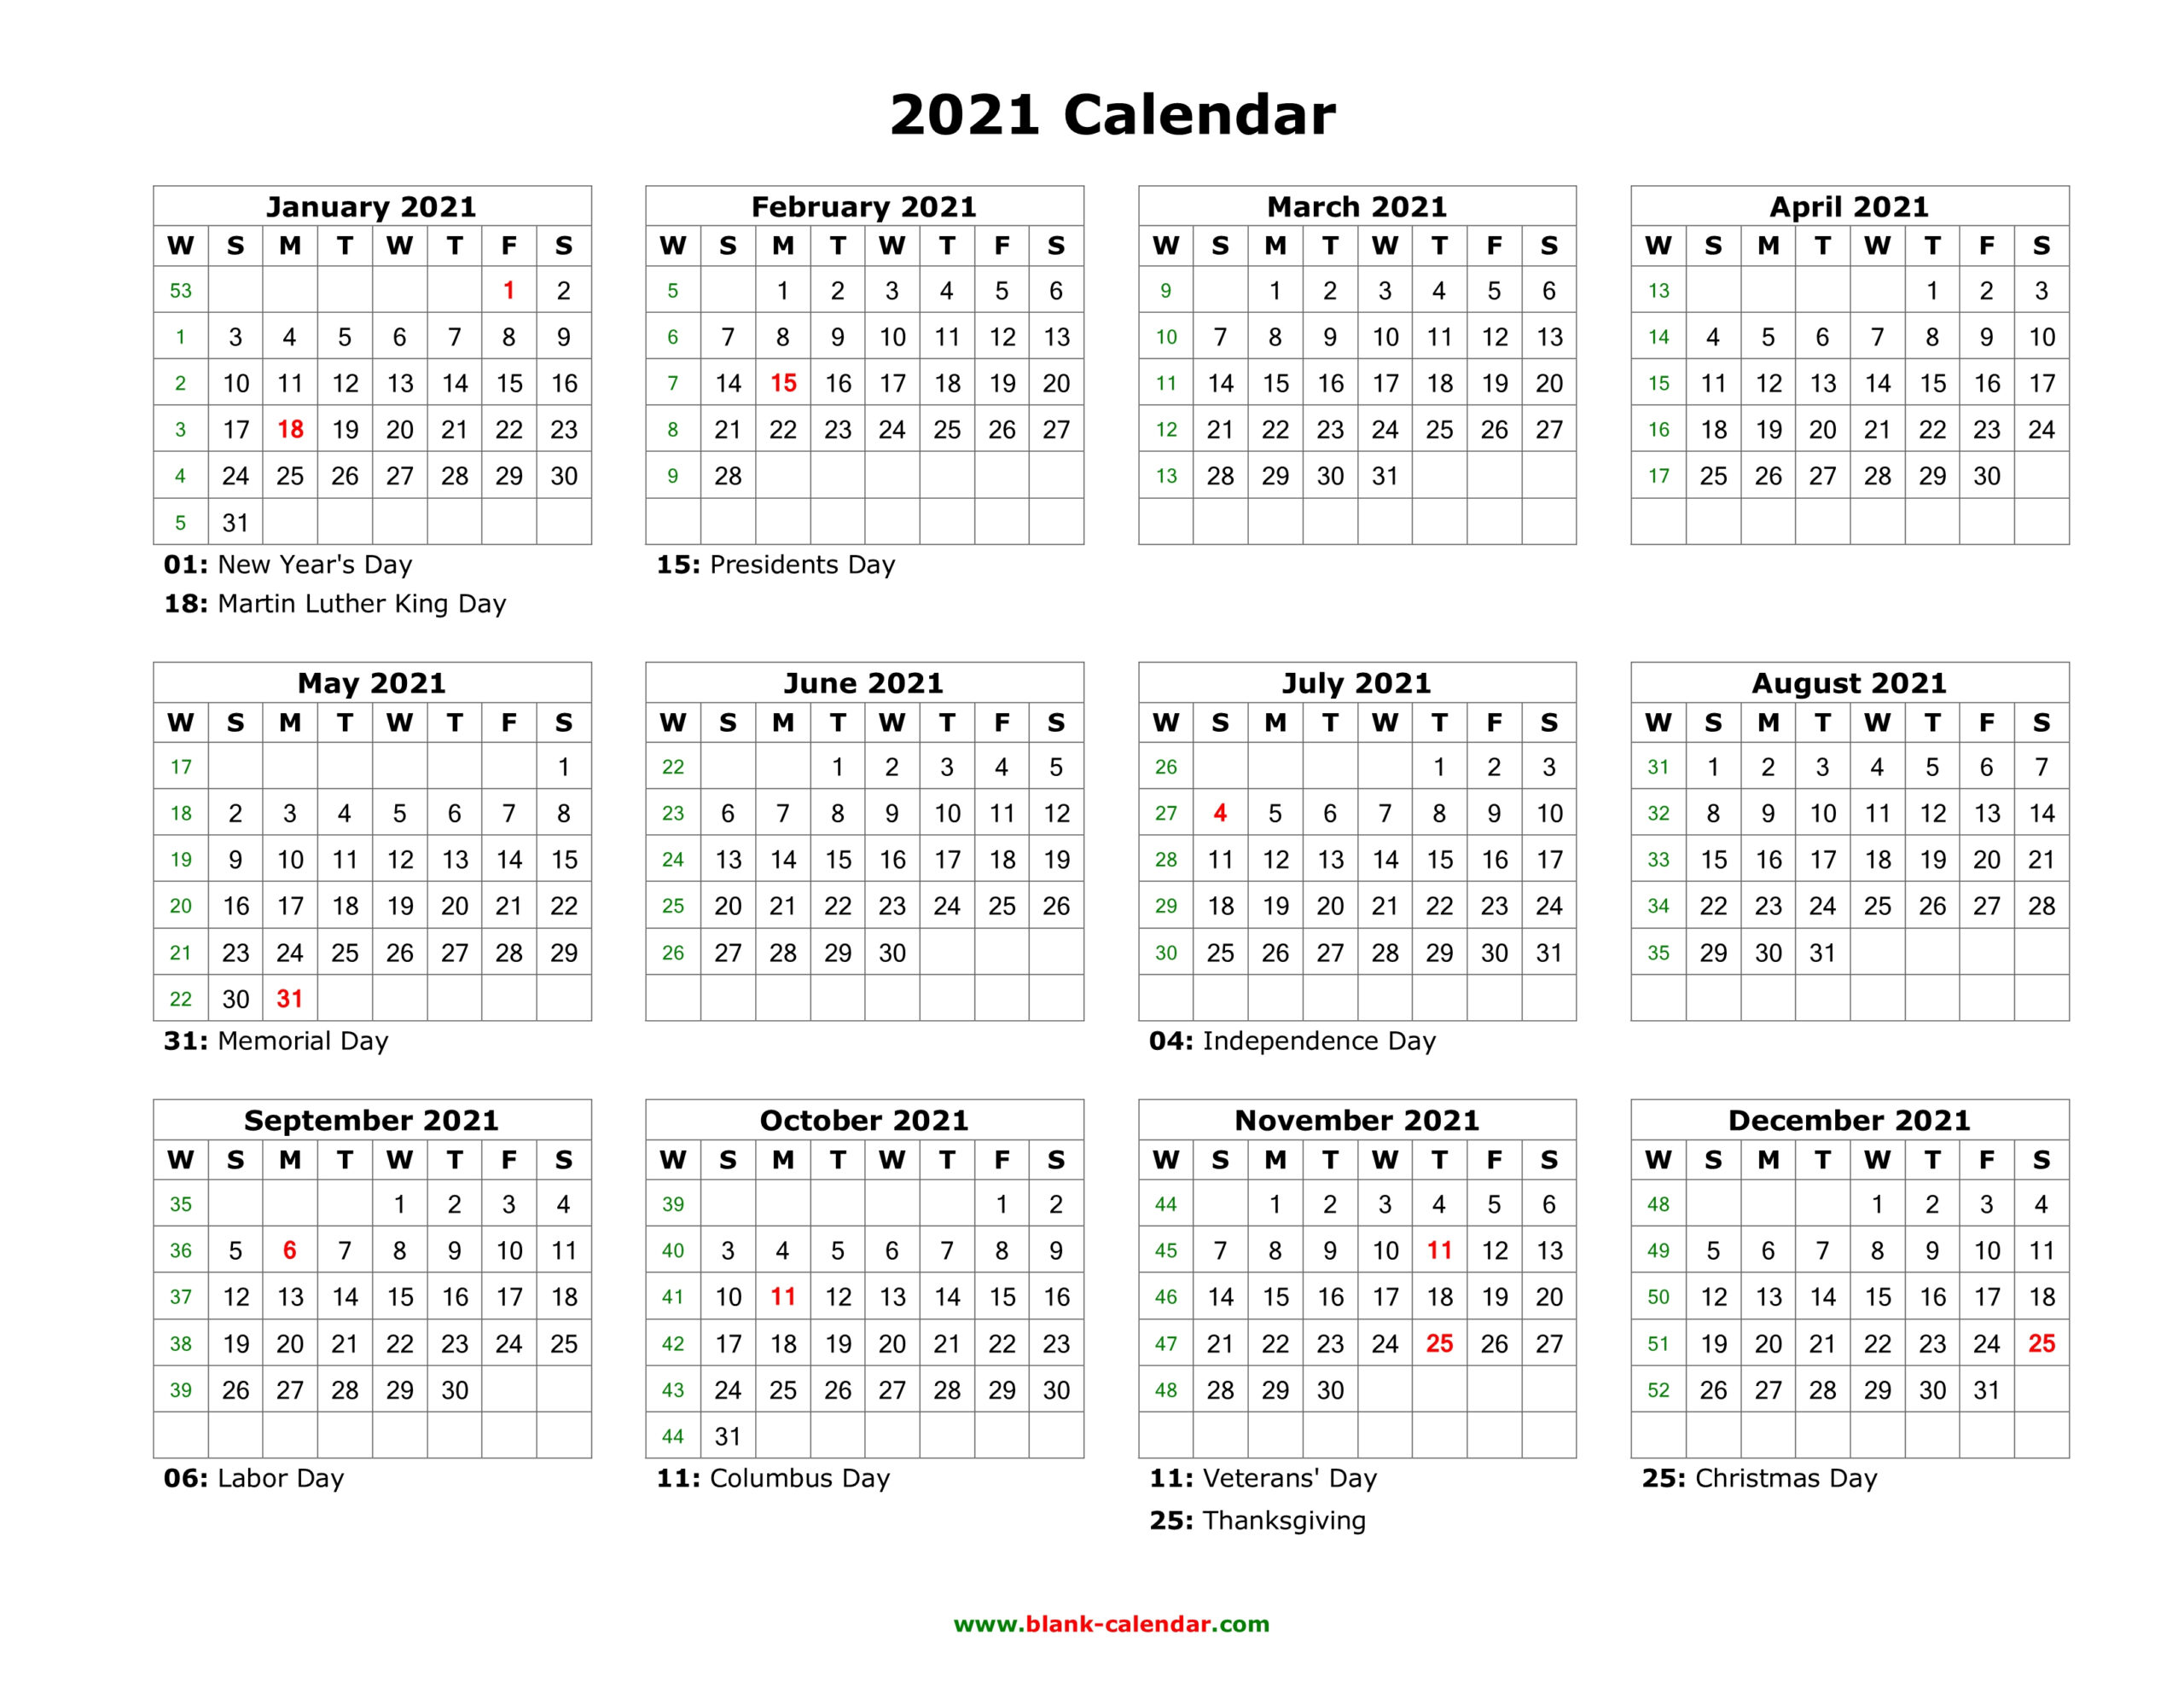 Blank Calendar 2021 | Free Download Calendar Templates regarding Fill In 2021 Calendar Pages Blank